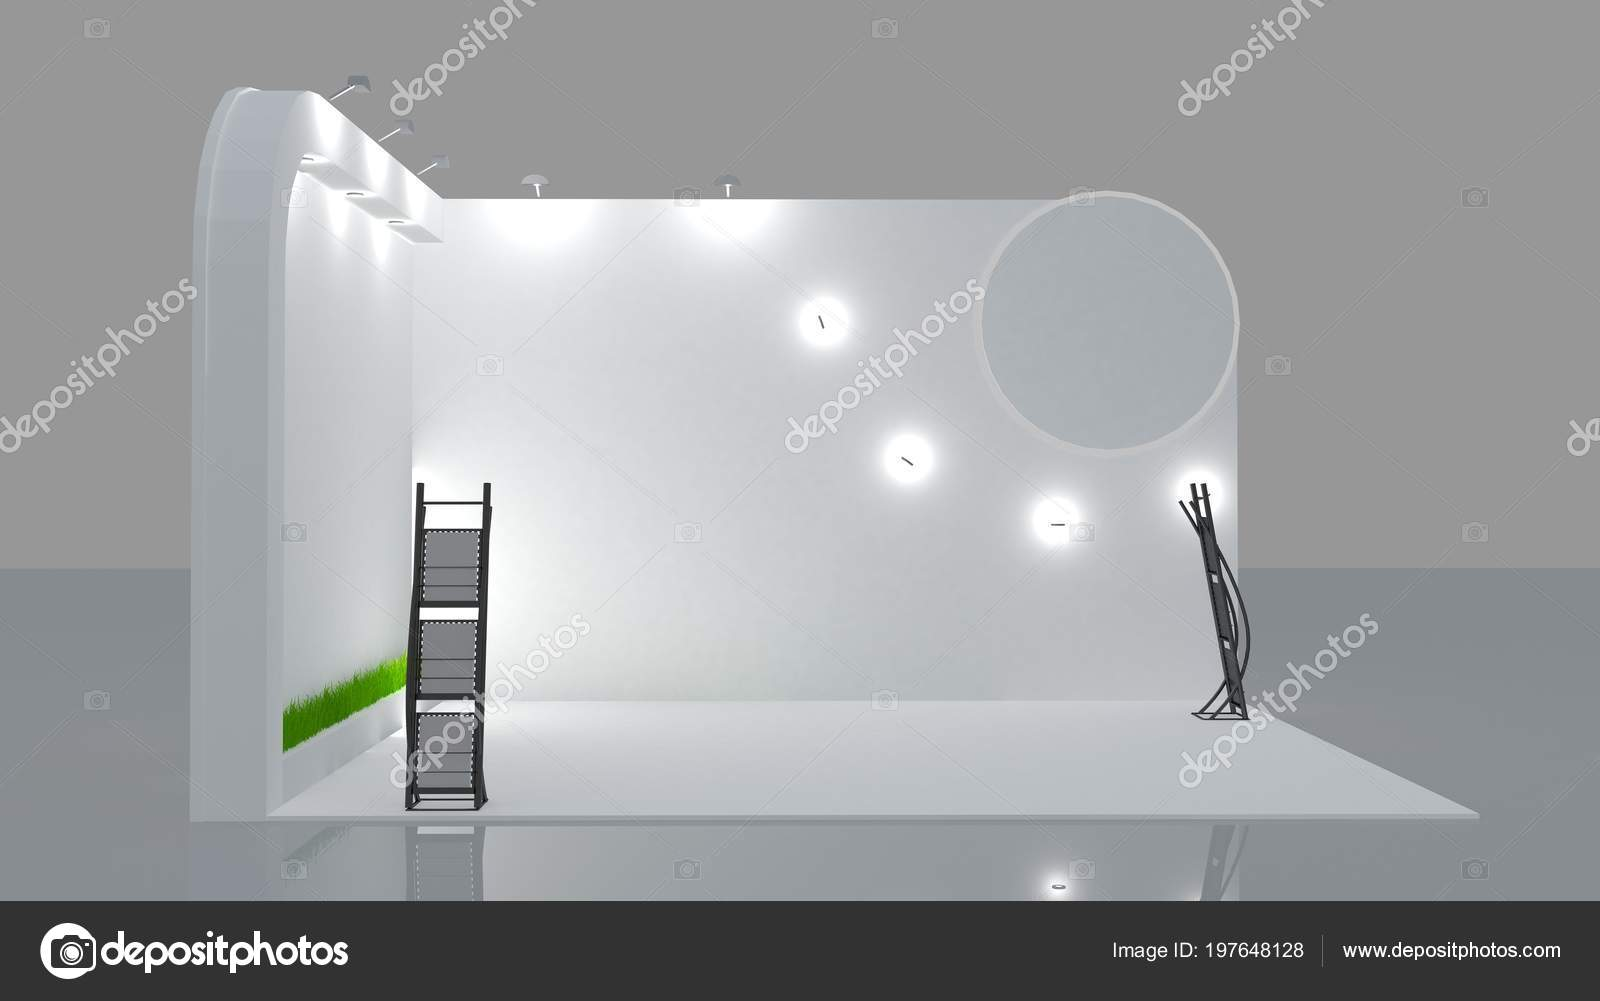 Exhibition Booth Blank : Blank white trade exhibition booth system stand for your design